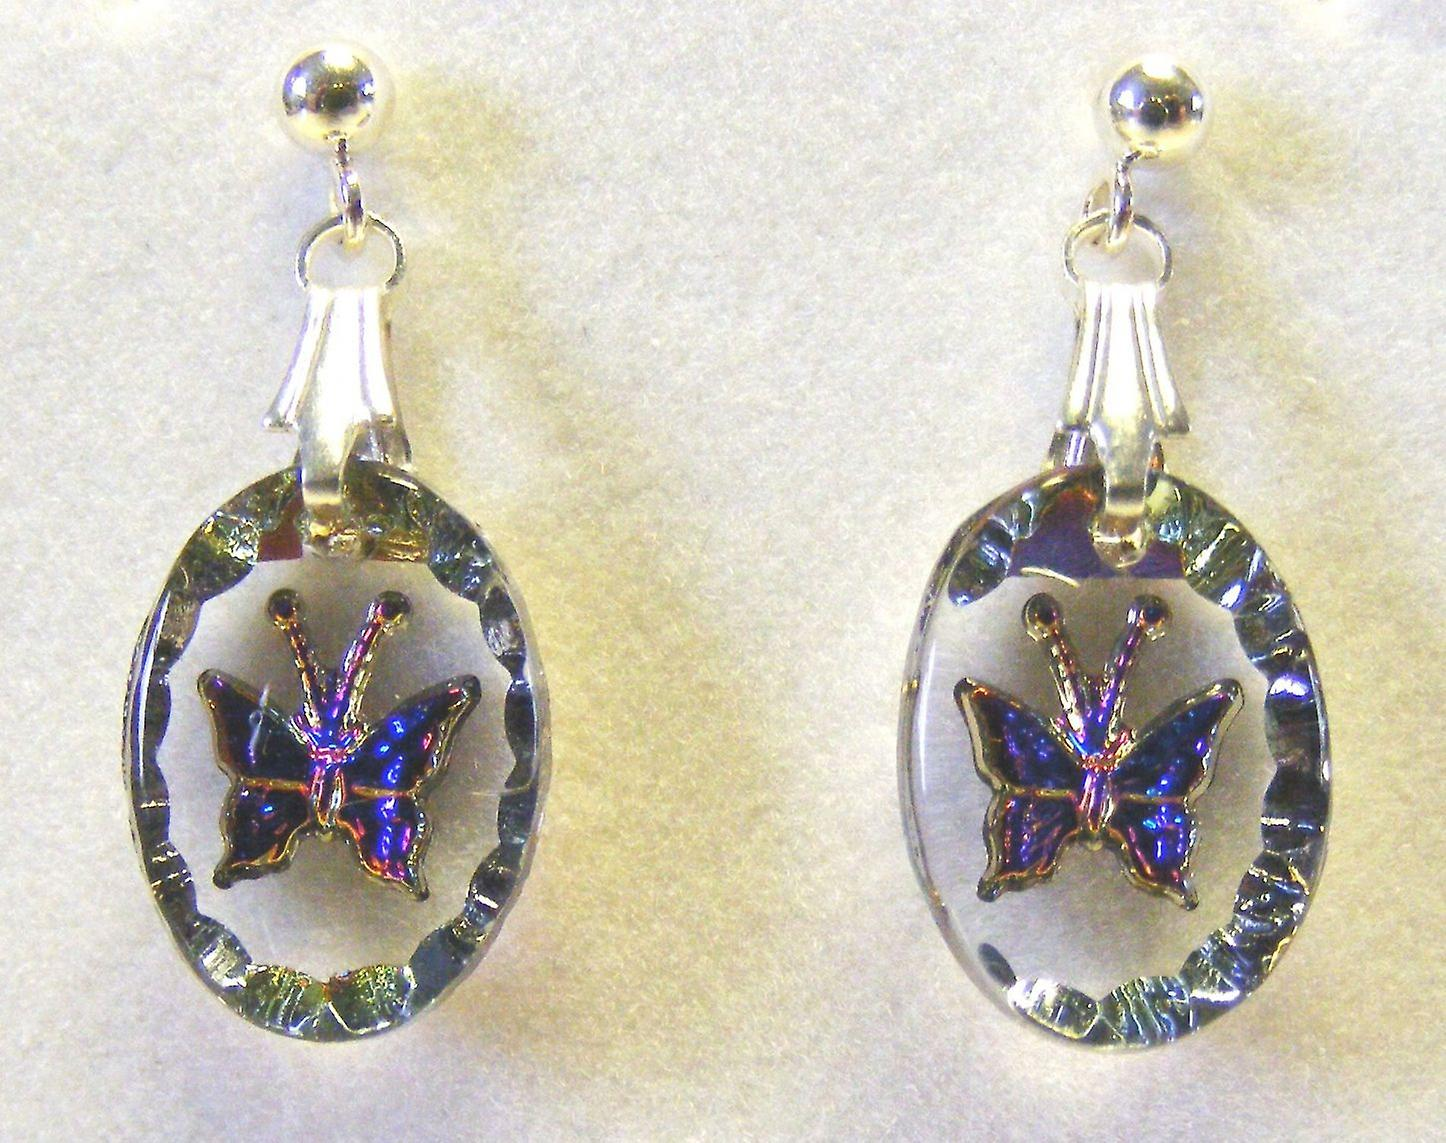 Heliotrope Butterfly Oval Earrings and Small Pendant set